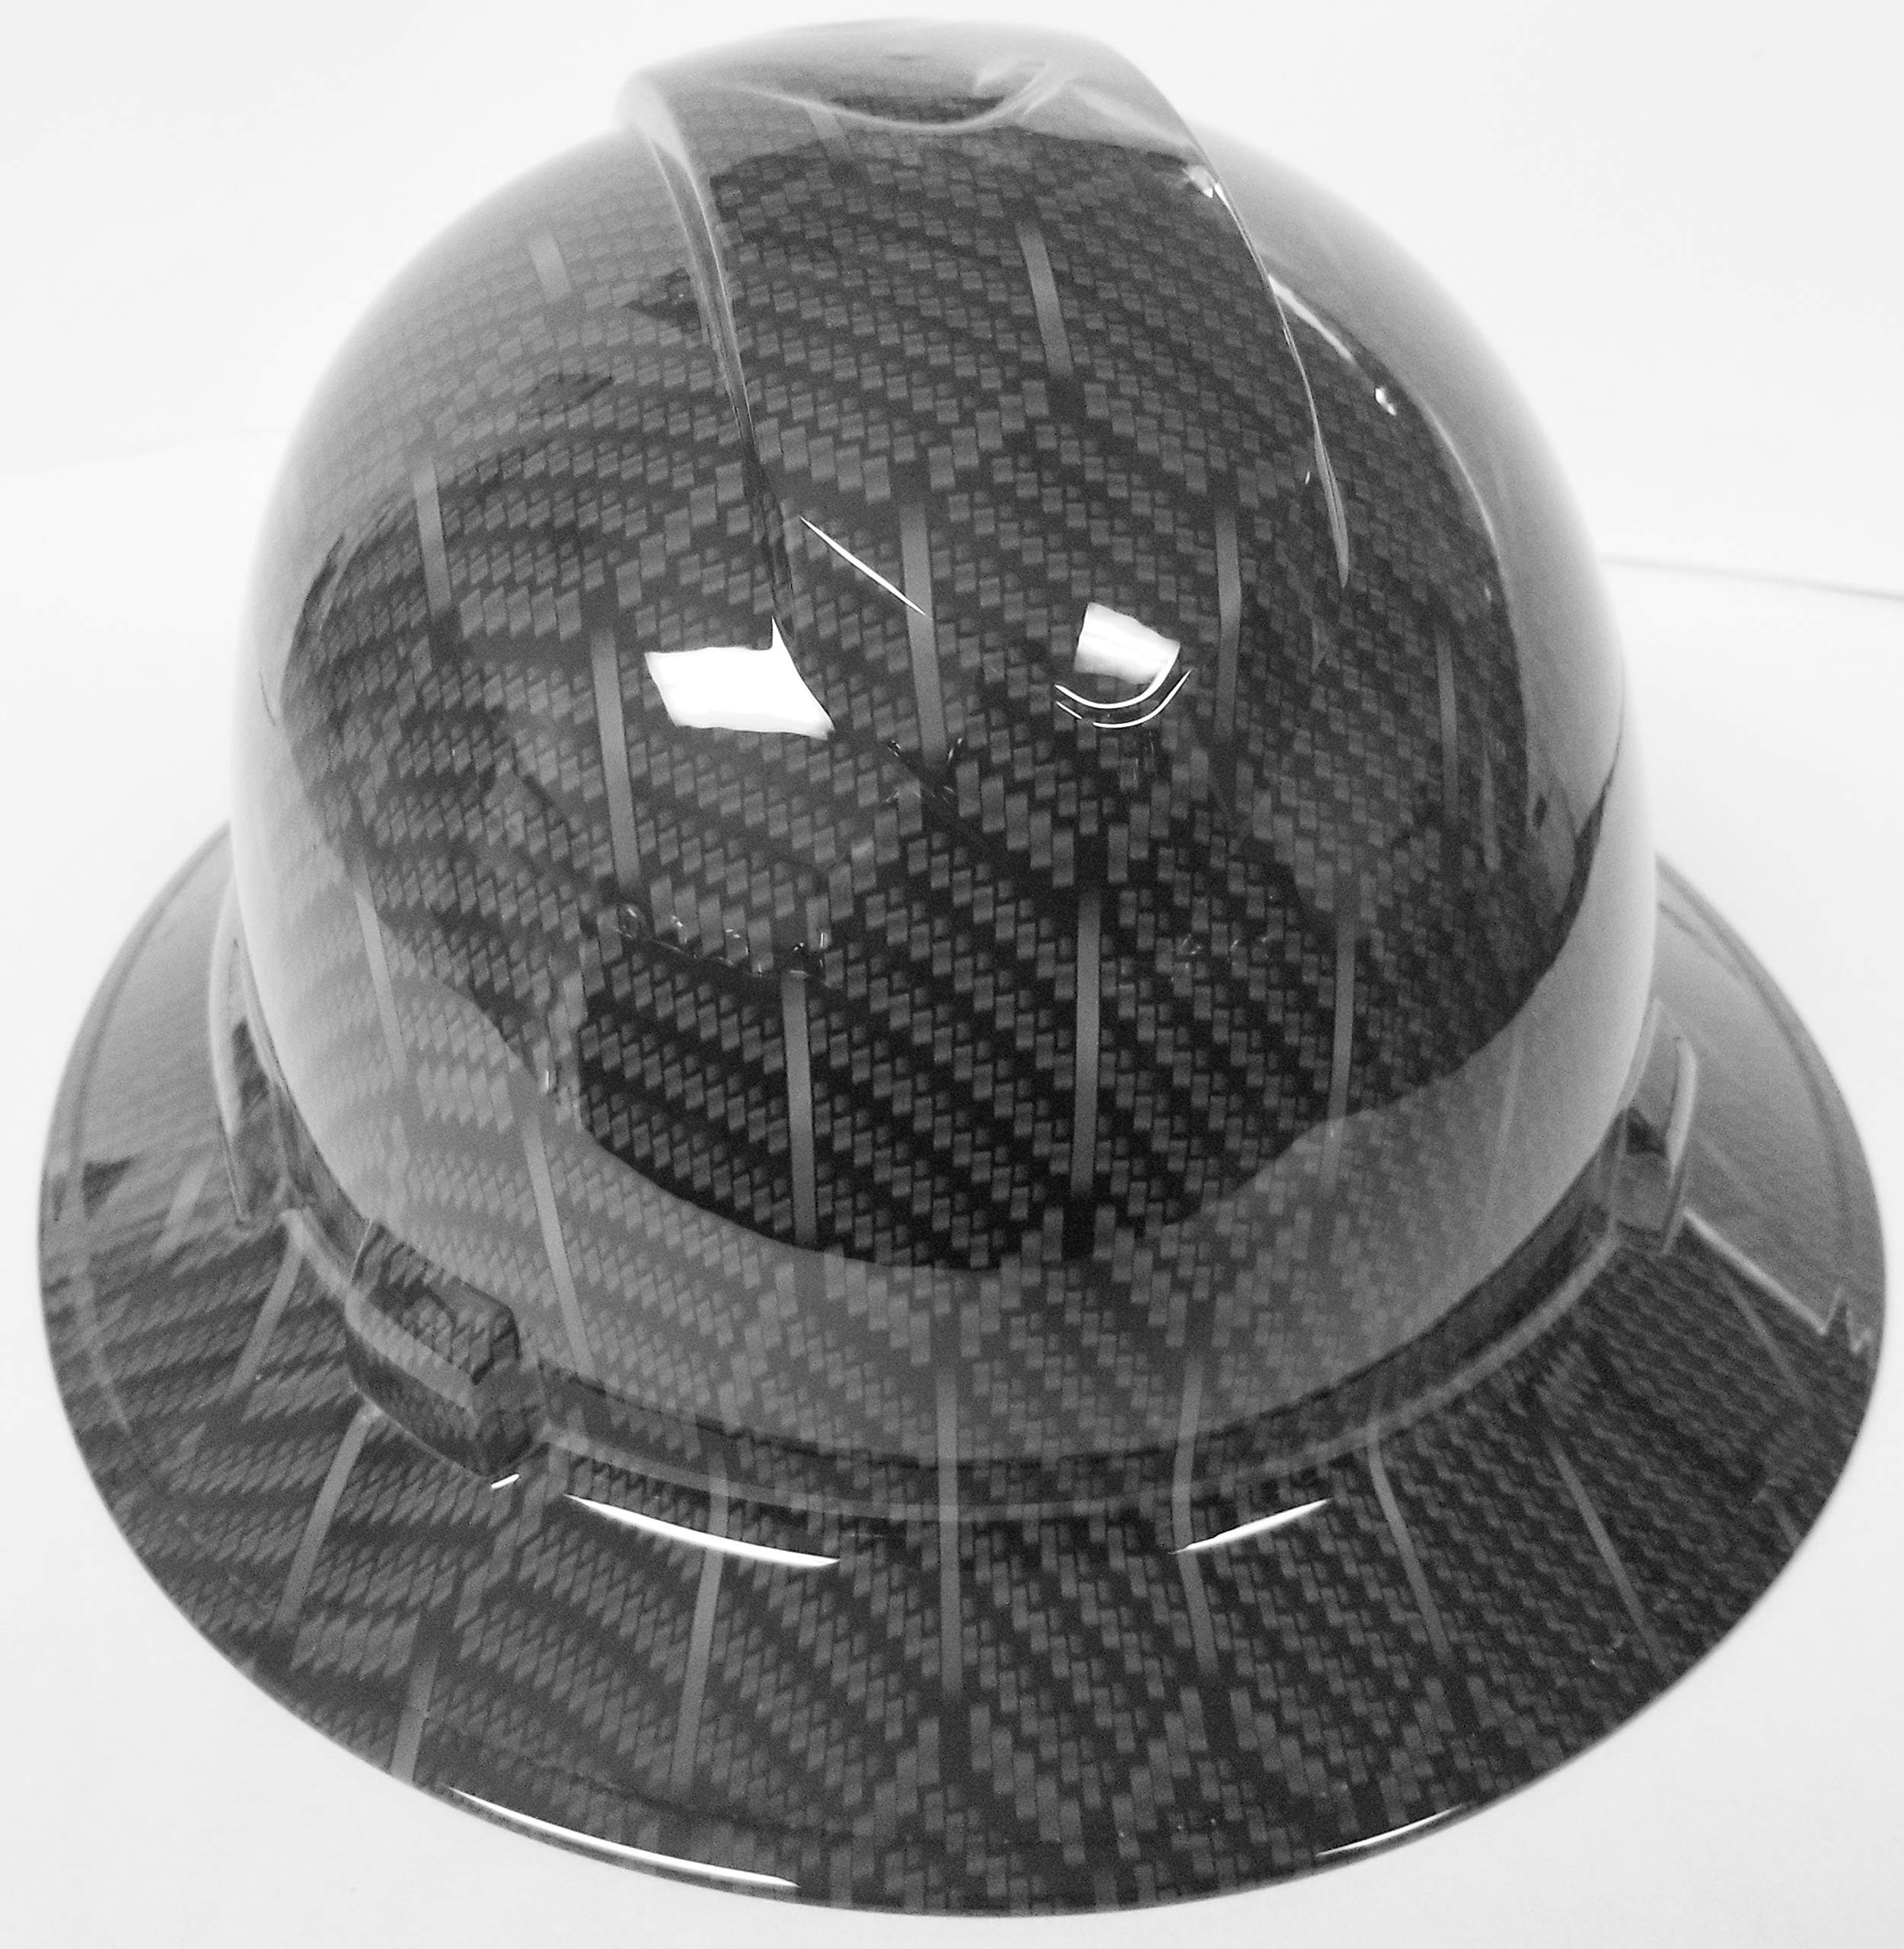 Wet Works Imaging Customized Pyramex Full Brim HEX Weave Carbon Fiber 3D Limited Hard HAT with Ratcheting Suspension Custom LIDS Crazy Sick Construction PPE